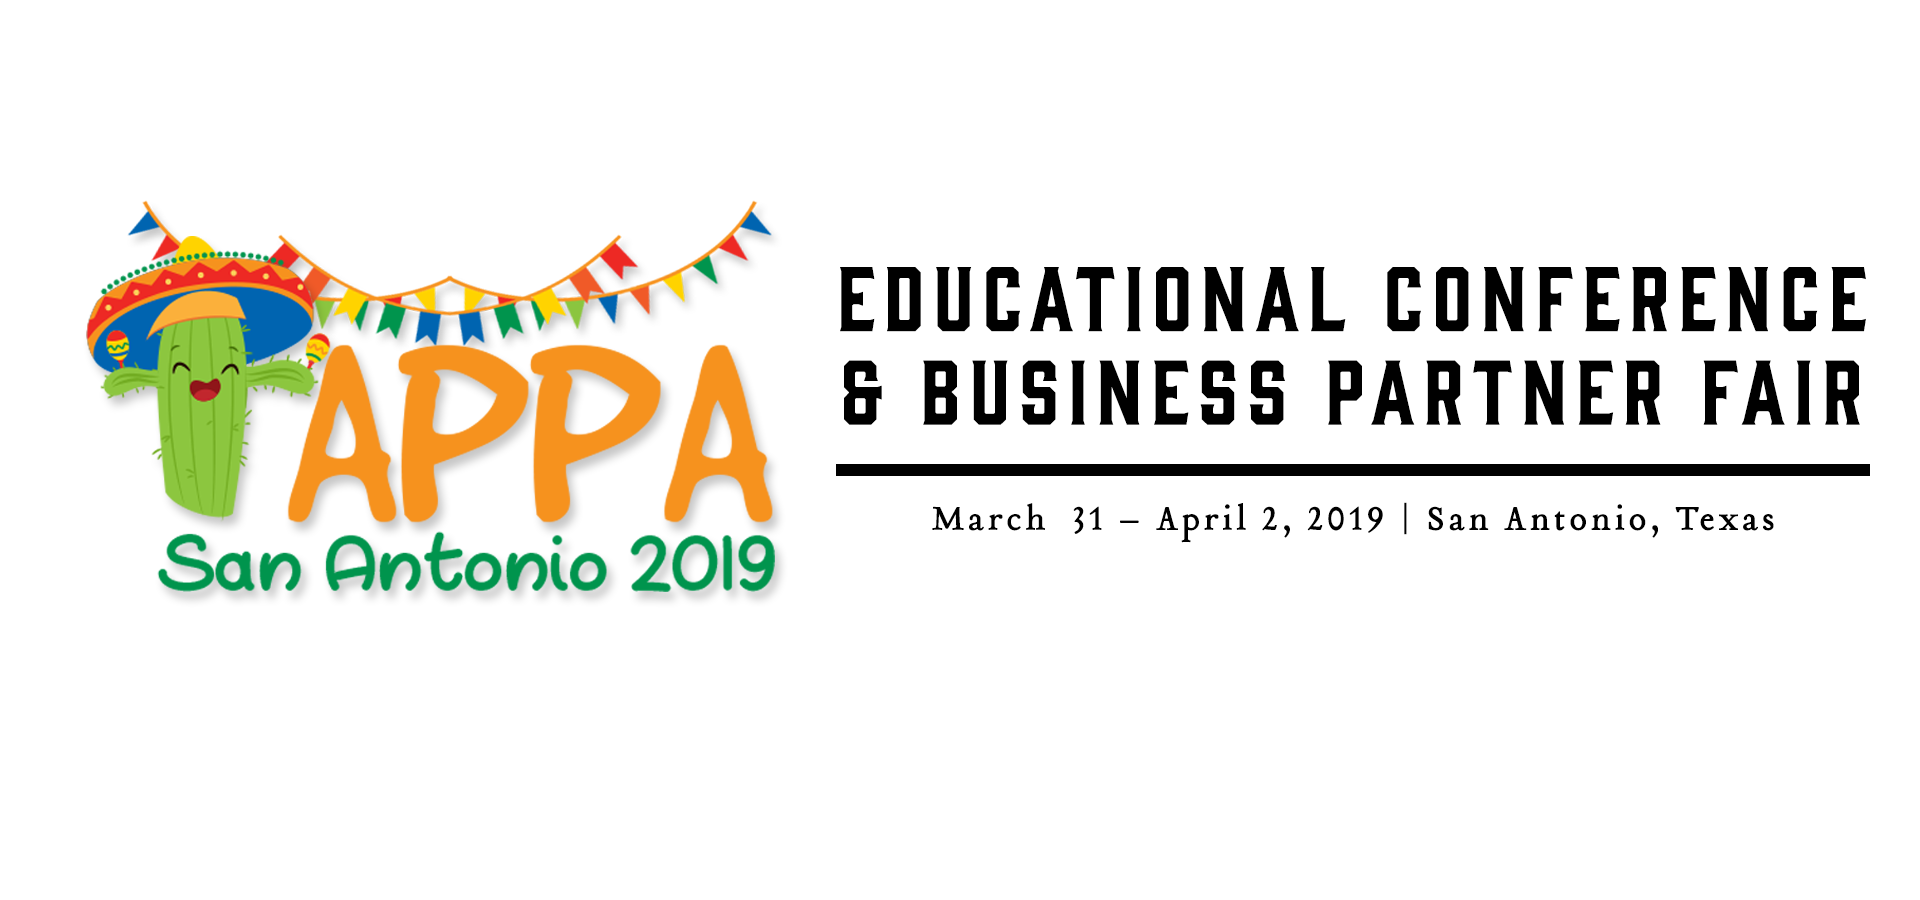 2019 Educational Conference & Business Partner Fair